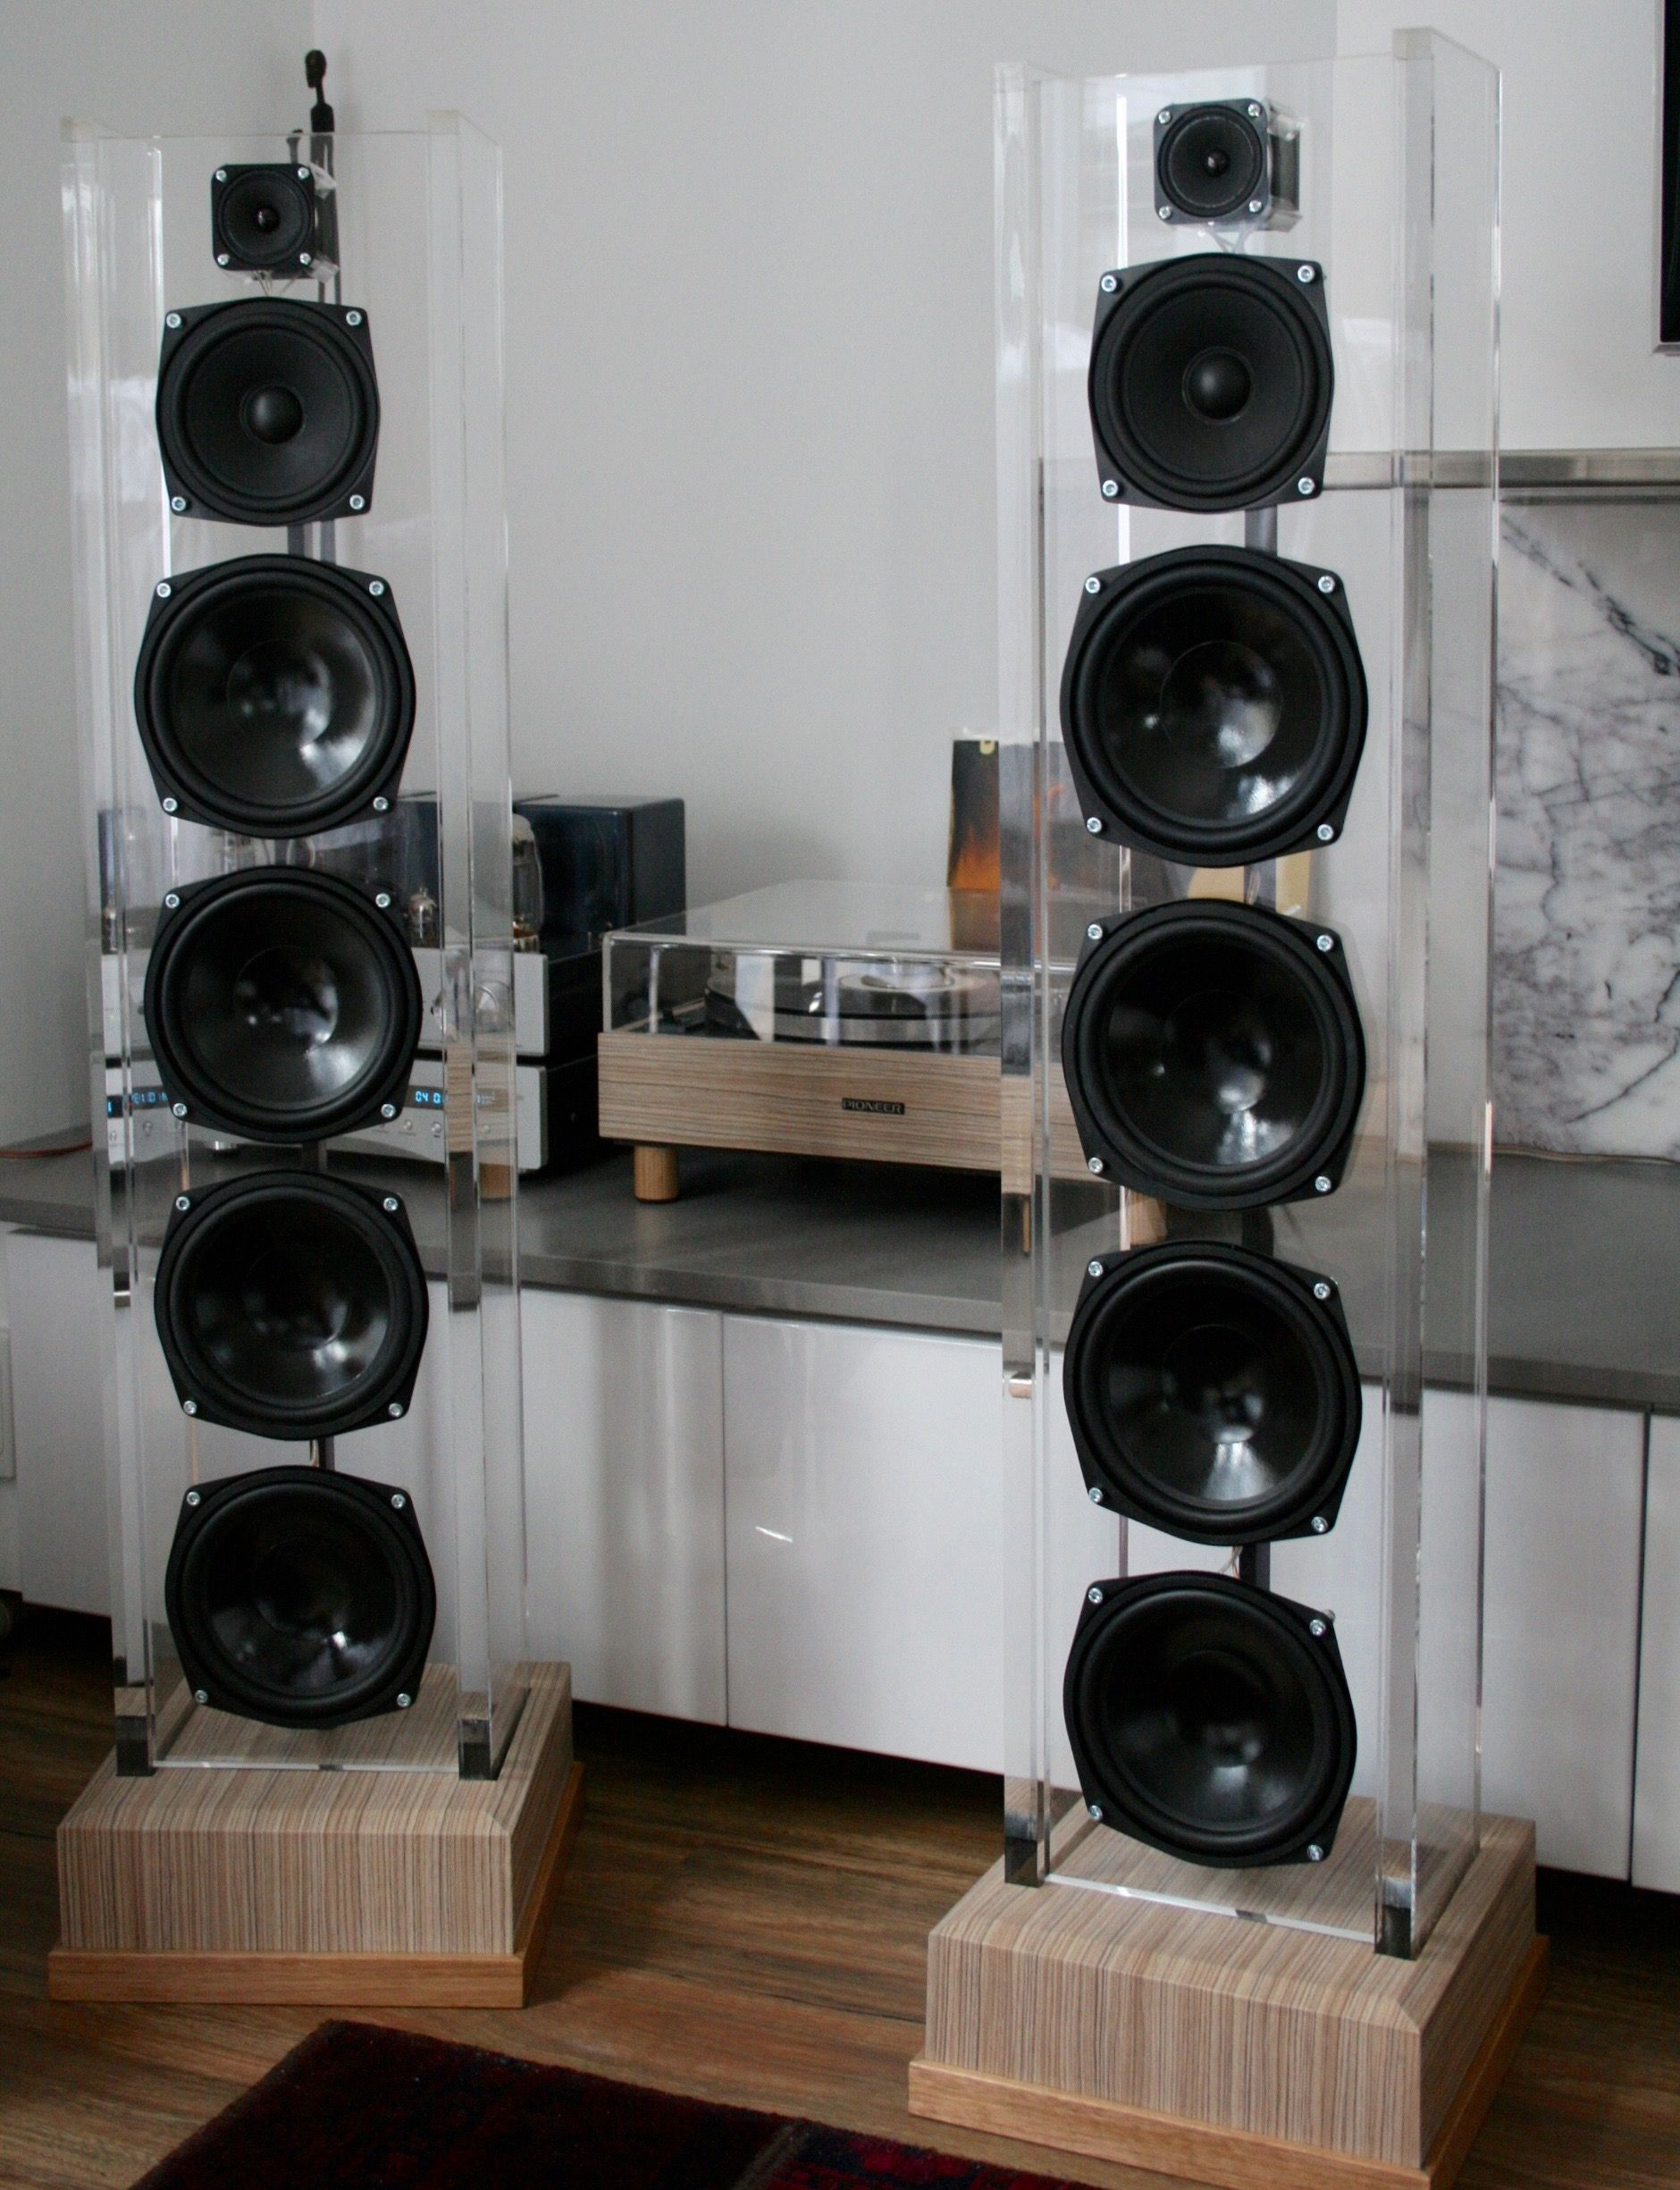 Acrylic Speakers Diy For Sale Http://wwwebaycomau/itm/open